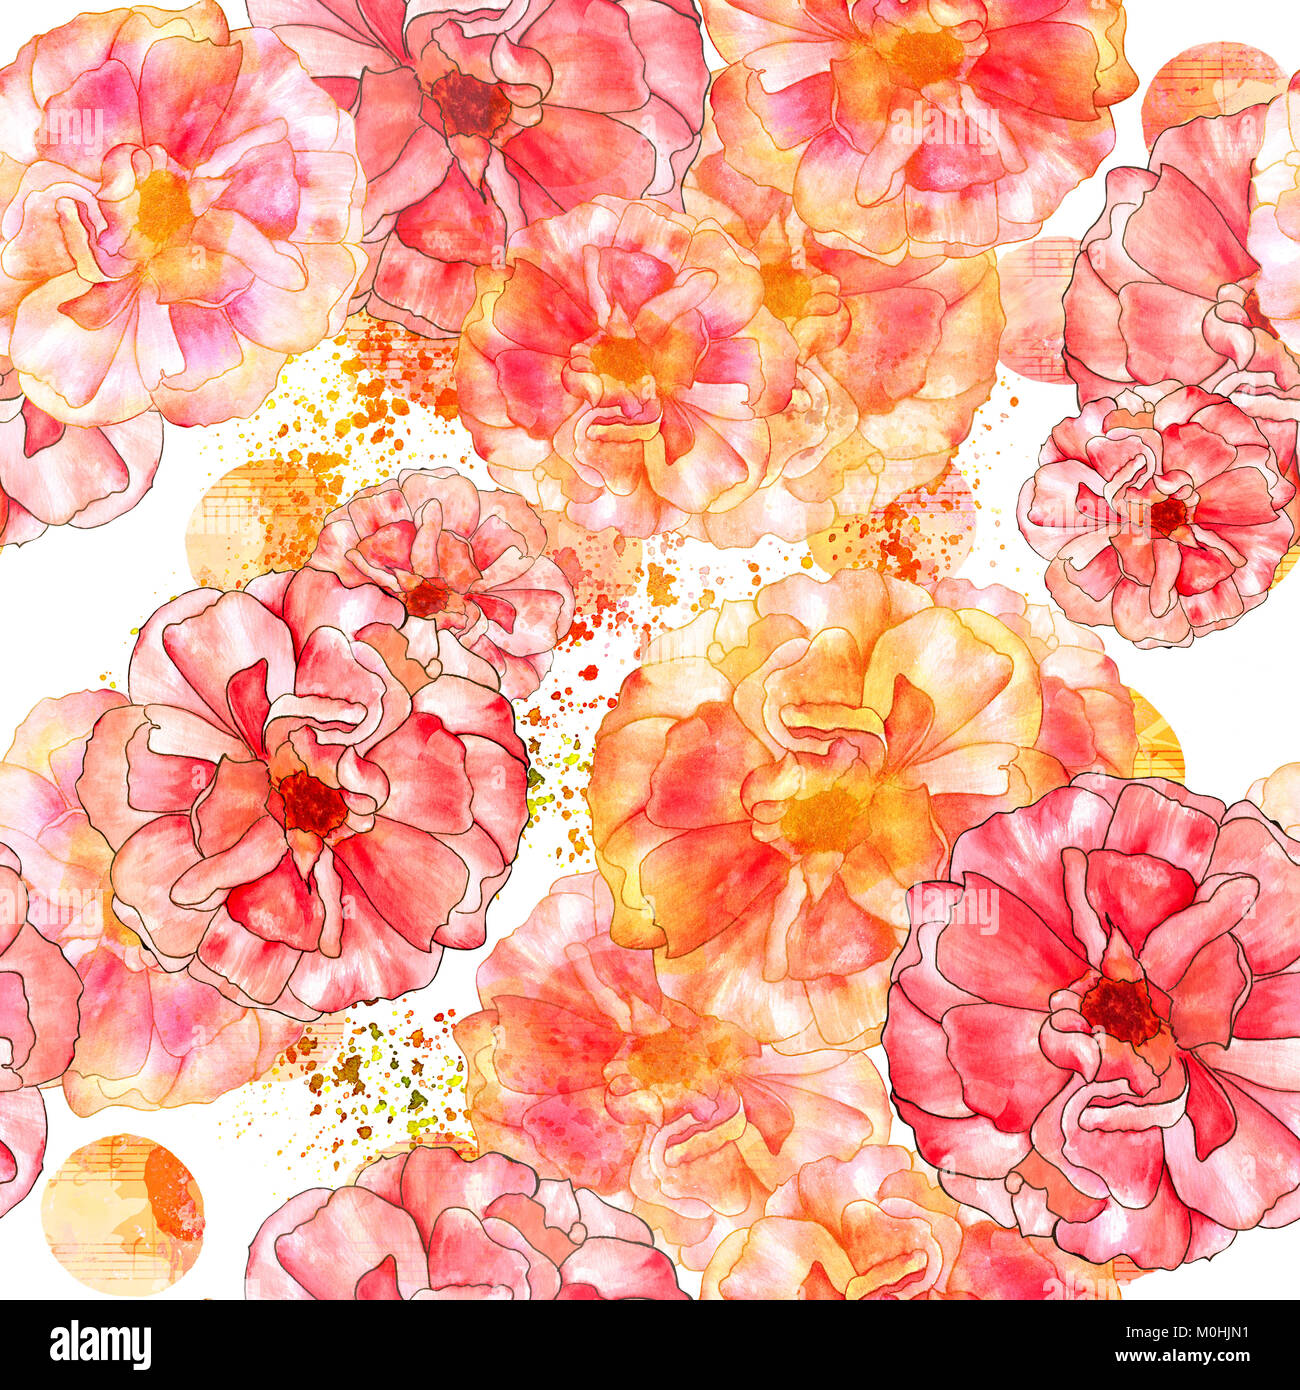 Art Nouveau Yellow A Seamless Pattern With Watercolour Drawings Of Blooming Pink And